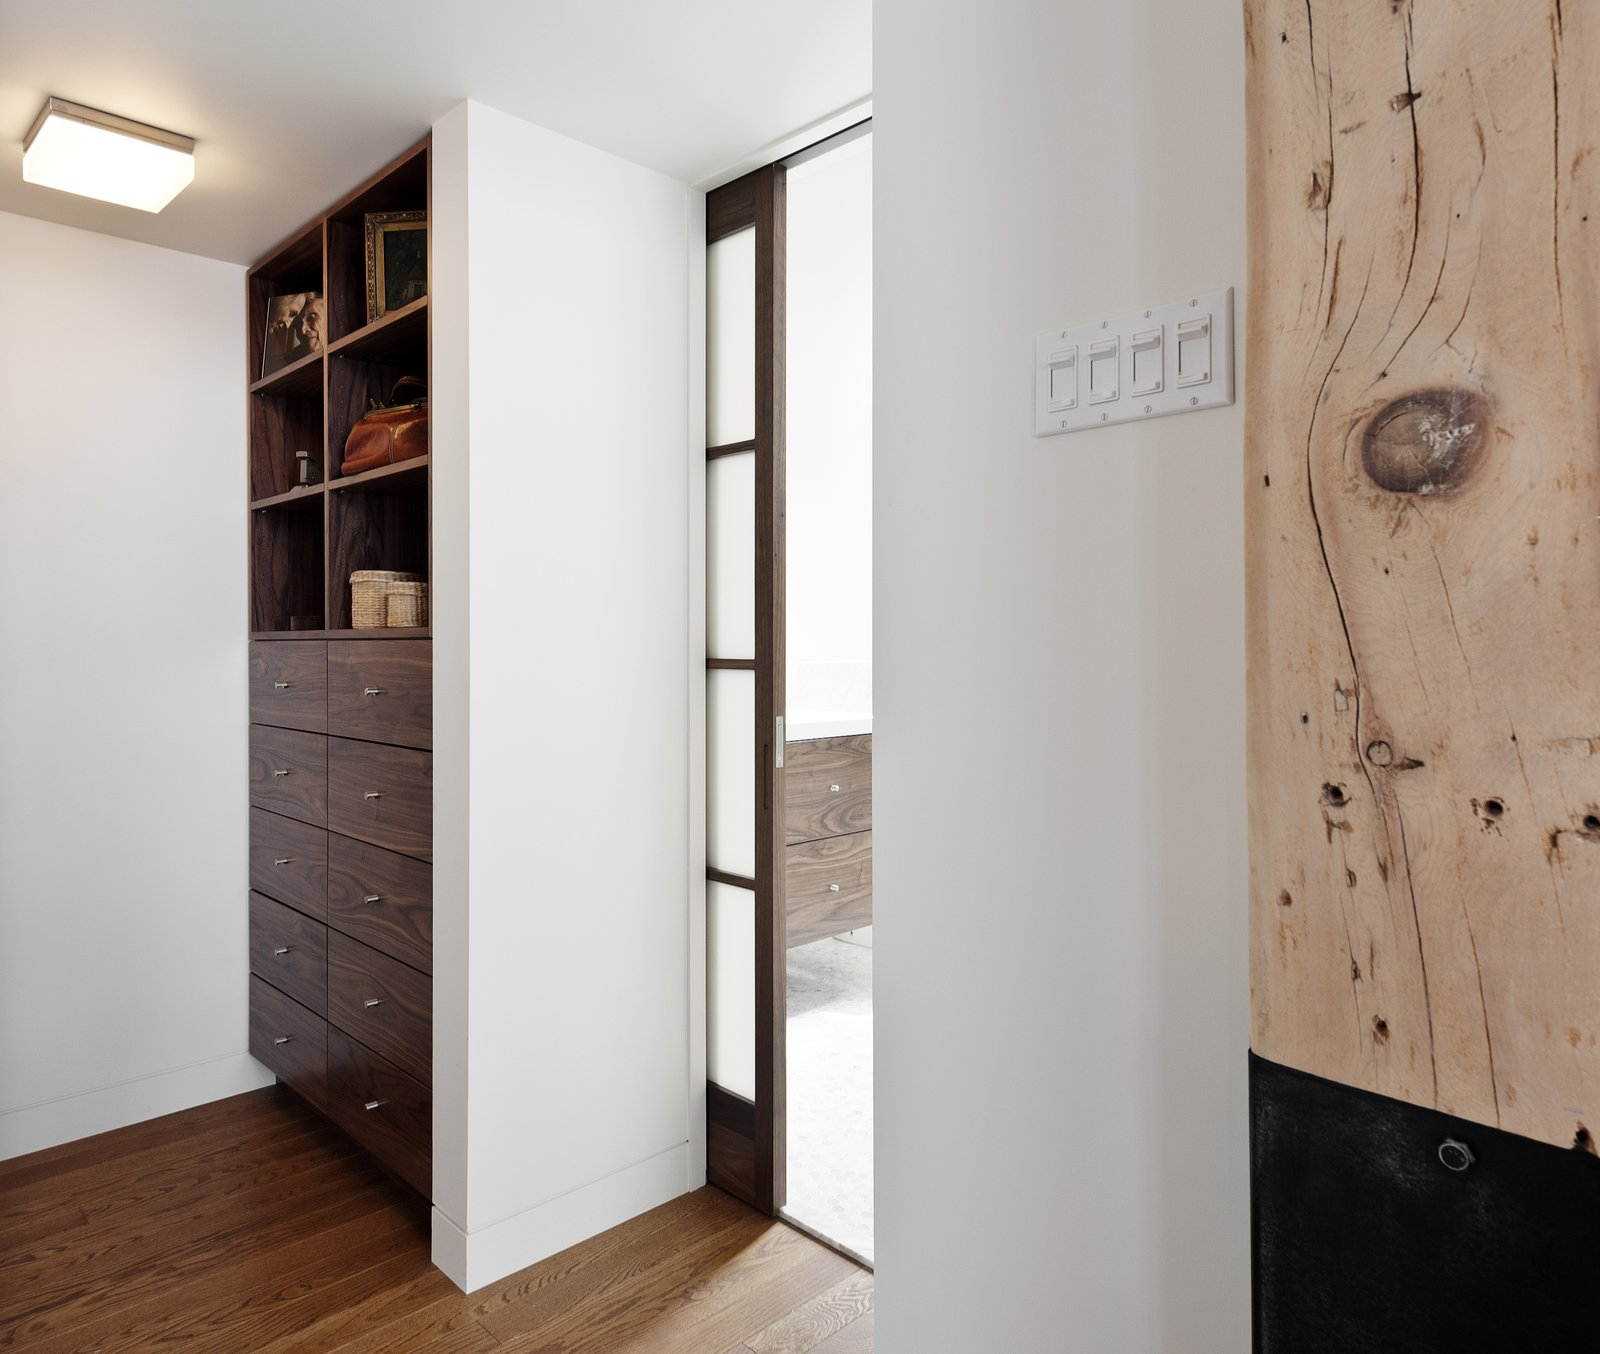 """The architects had to master the art of hiding storage throughout the apartment, including with this custom walnut organizer. As the homeowners near retirement age, the architects explain that the flat is a """"highly functional and sophisticated space that will serve them well as they begin another phase in their life together.""""  Brick House by Caroline Wallis"""